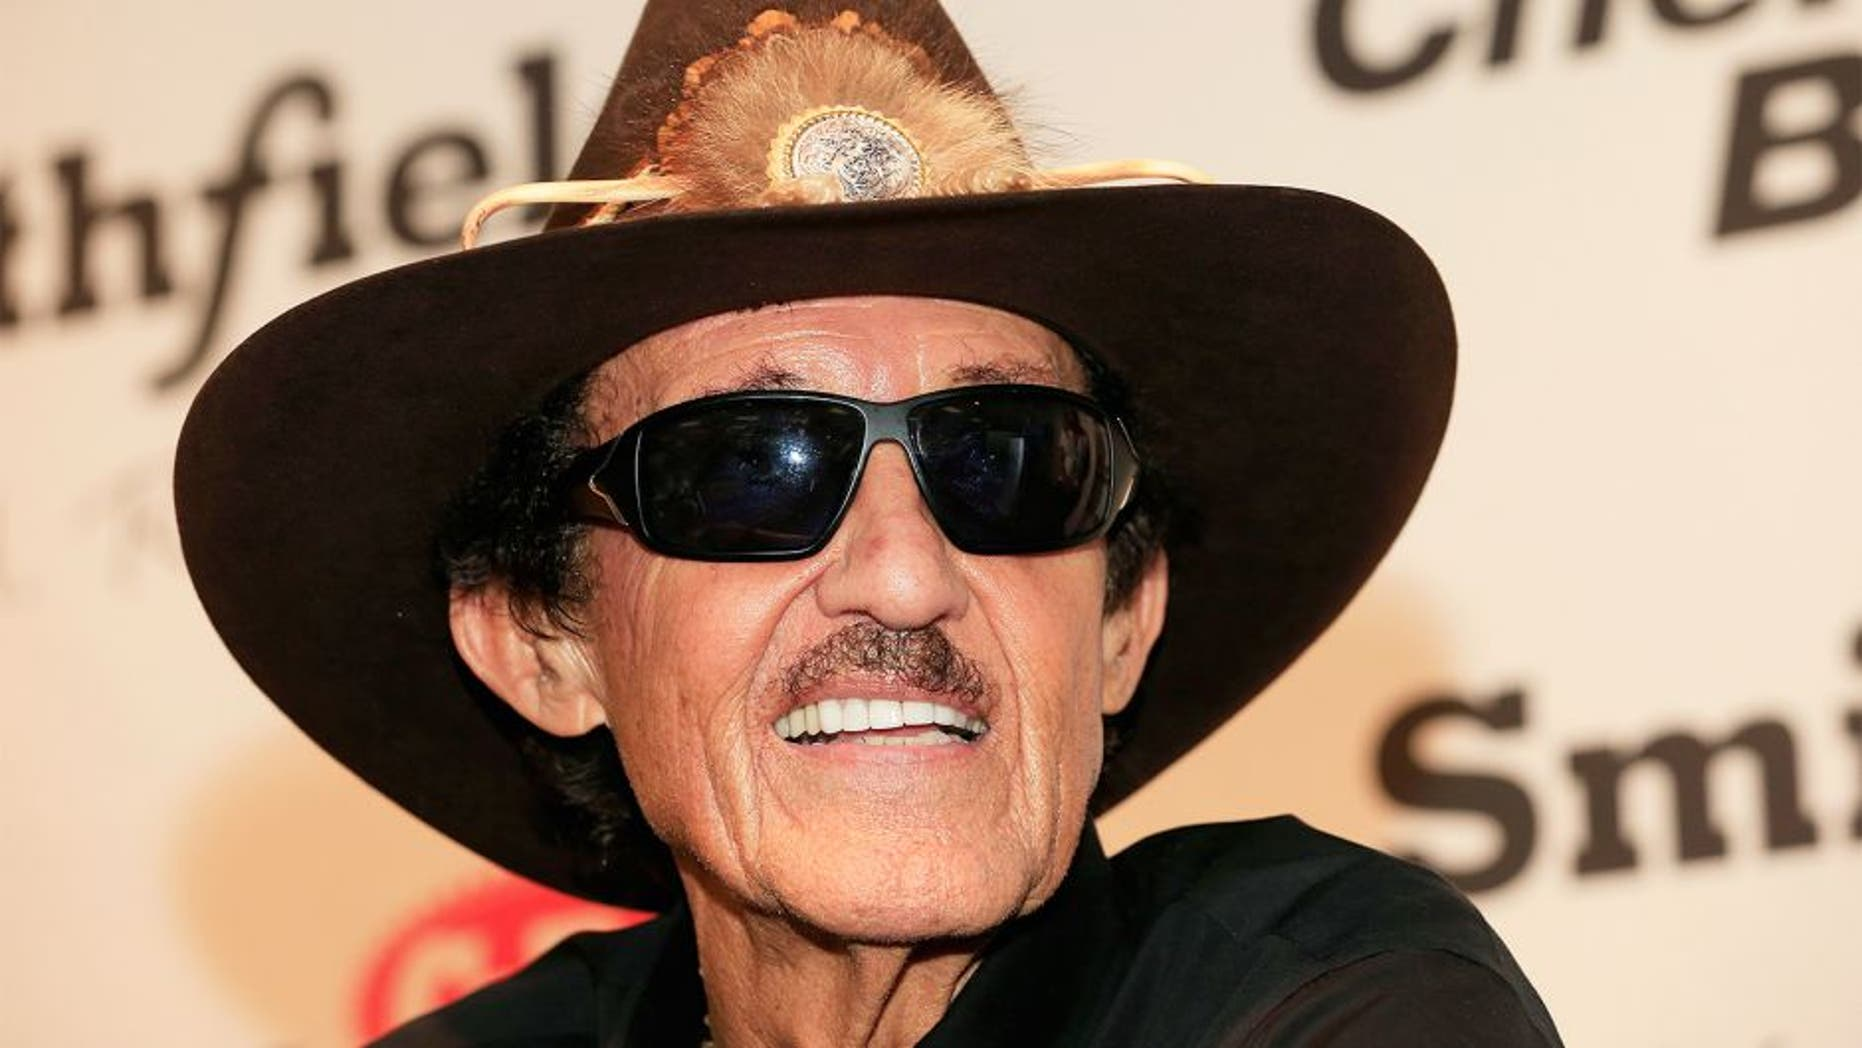 HOMESTEAD, FL - NOVEMBER 20: Team owner Richard Petty speaks during a news conference at Homestead-Miami Speedway on November 20, 2015 in Homestead, Florida. (Photo by Chris Trotman/NASCAR via Getty Images)